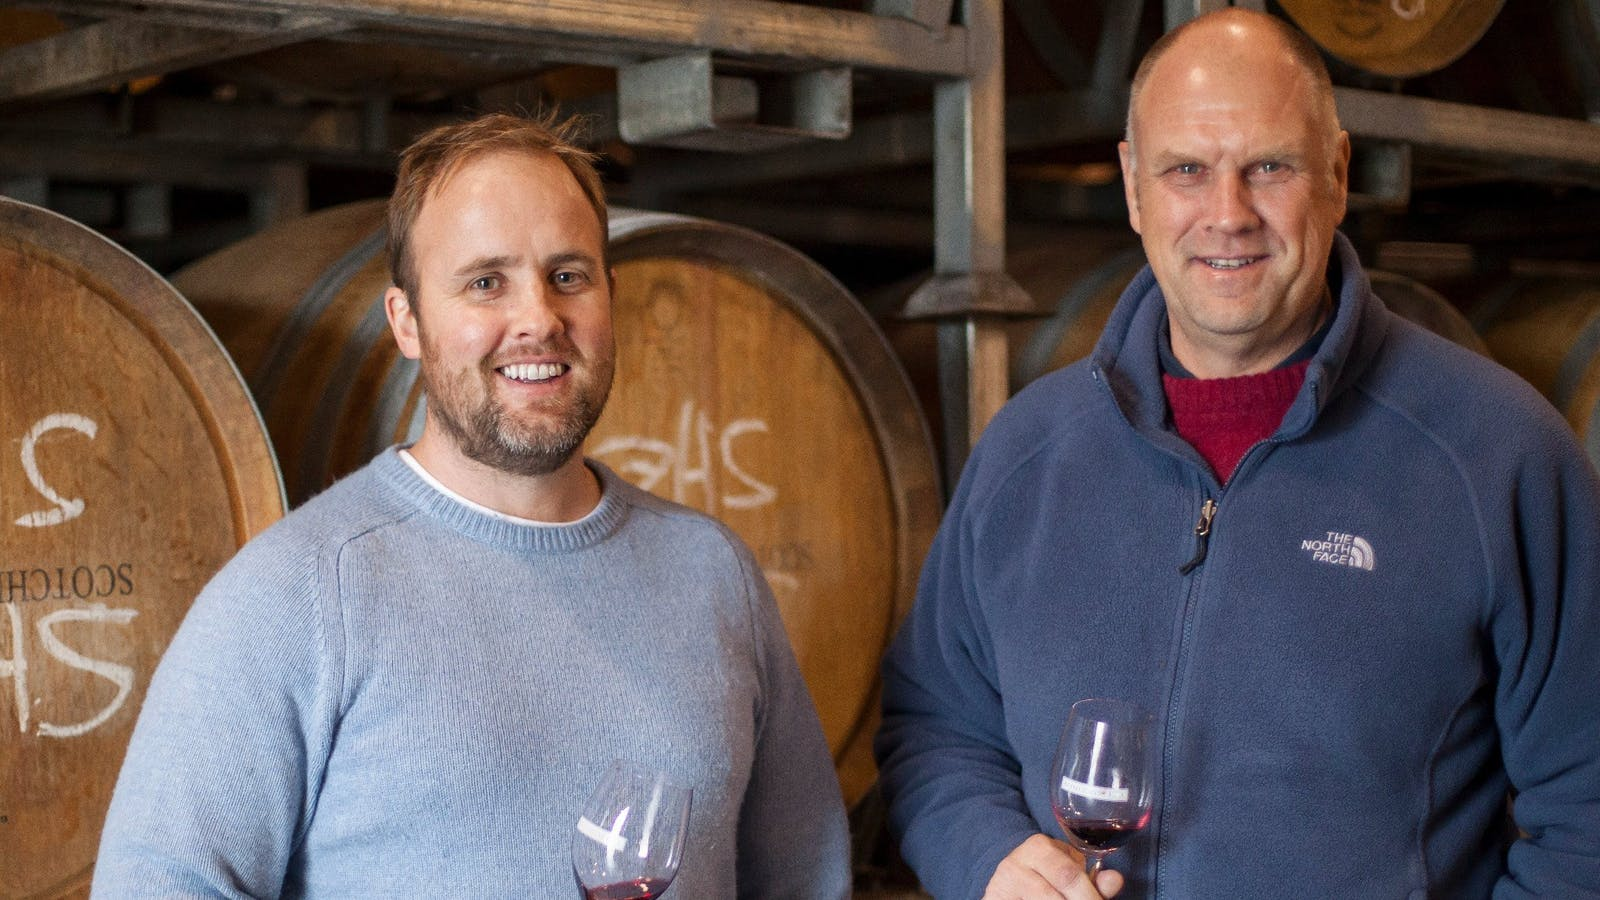 Winemakers Robin Brockett and Marcus Holt